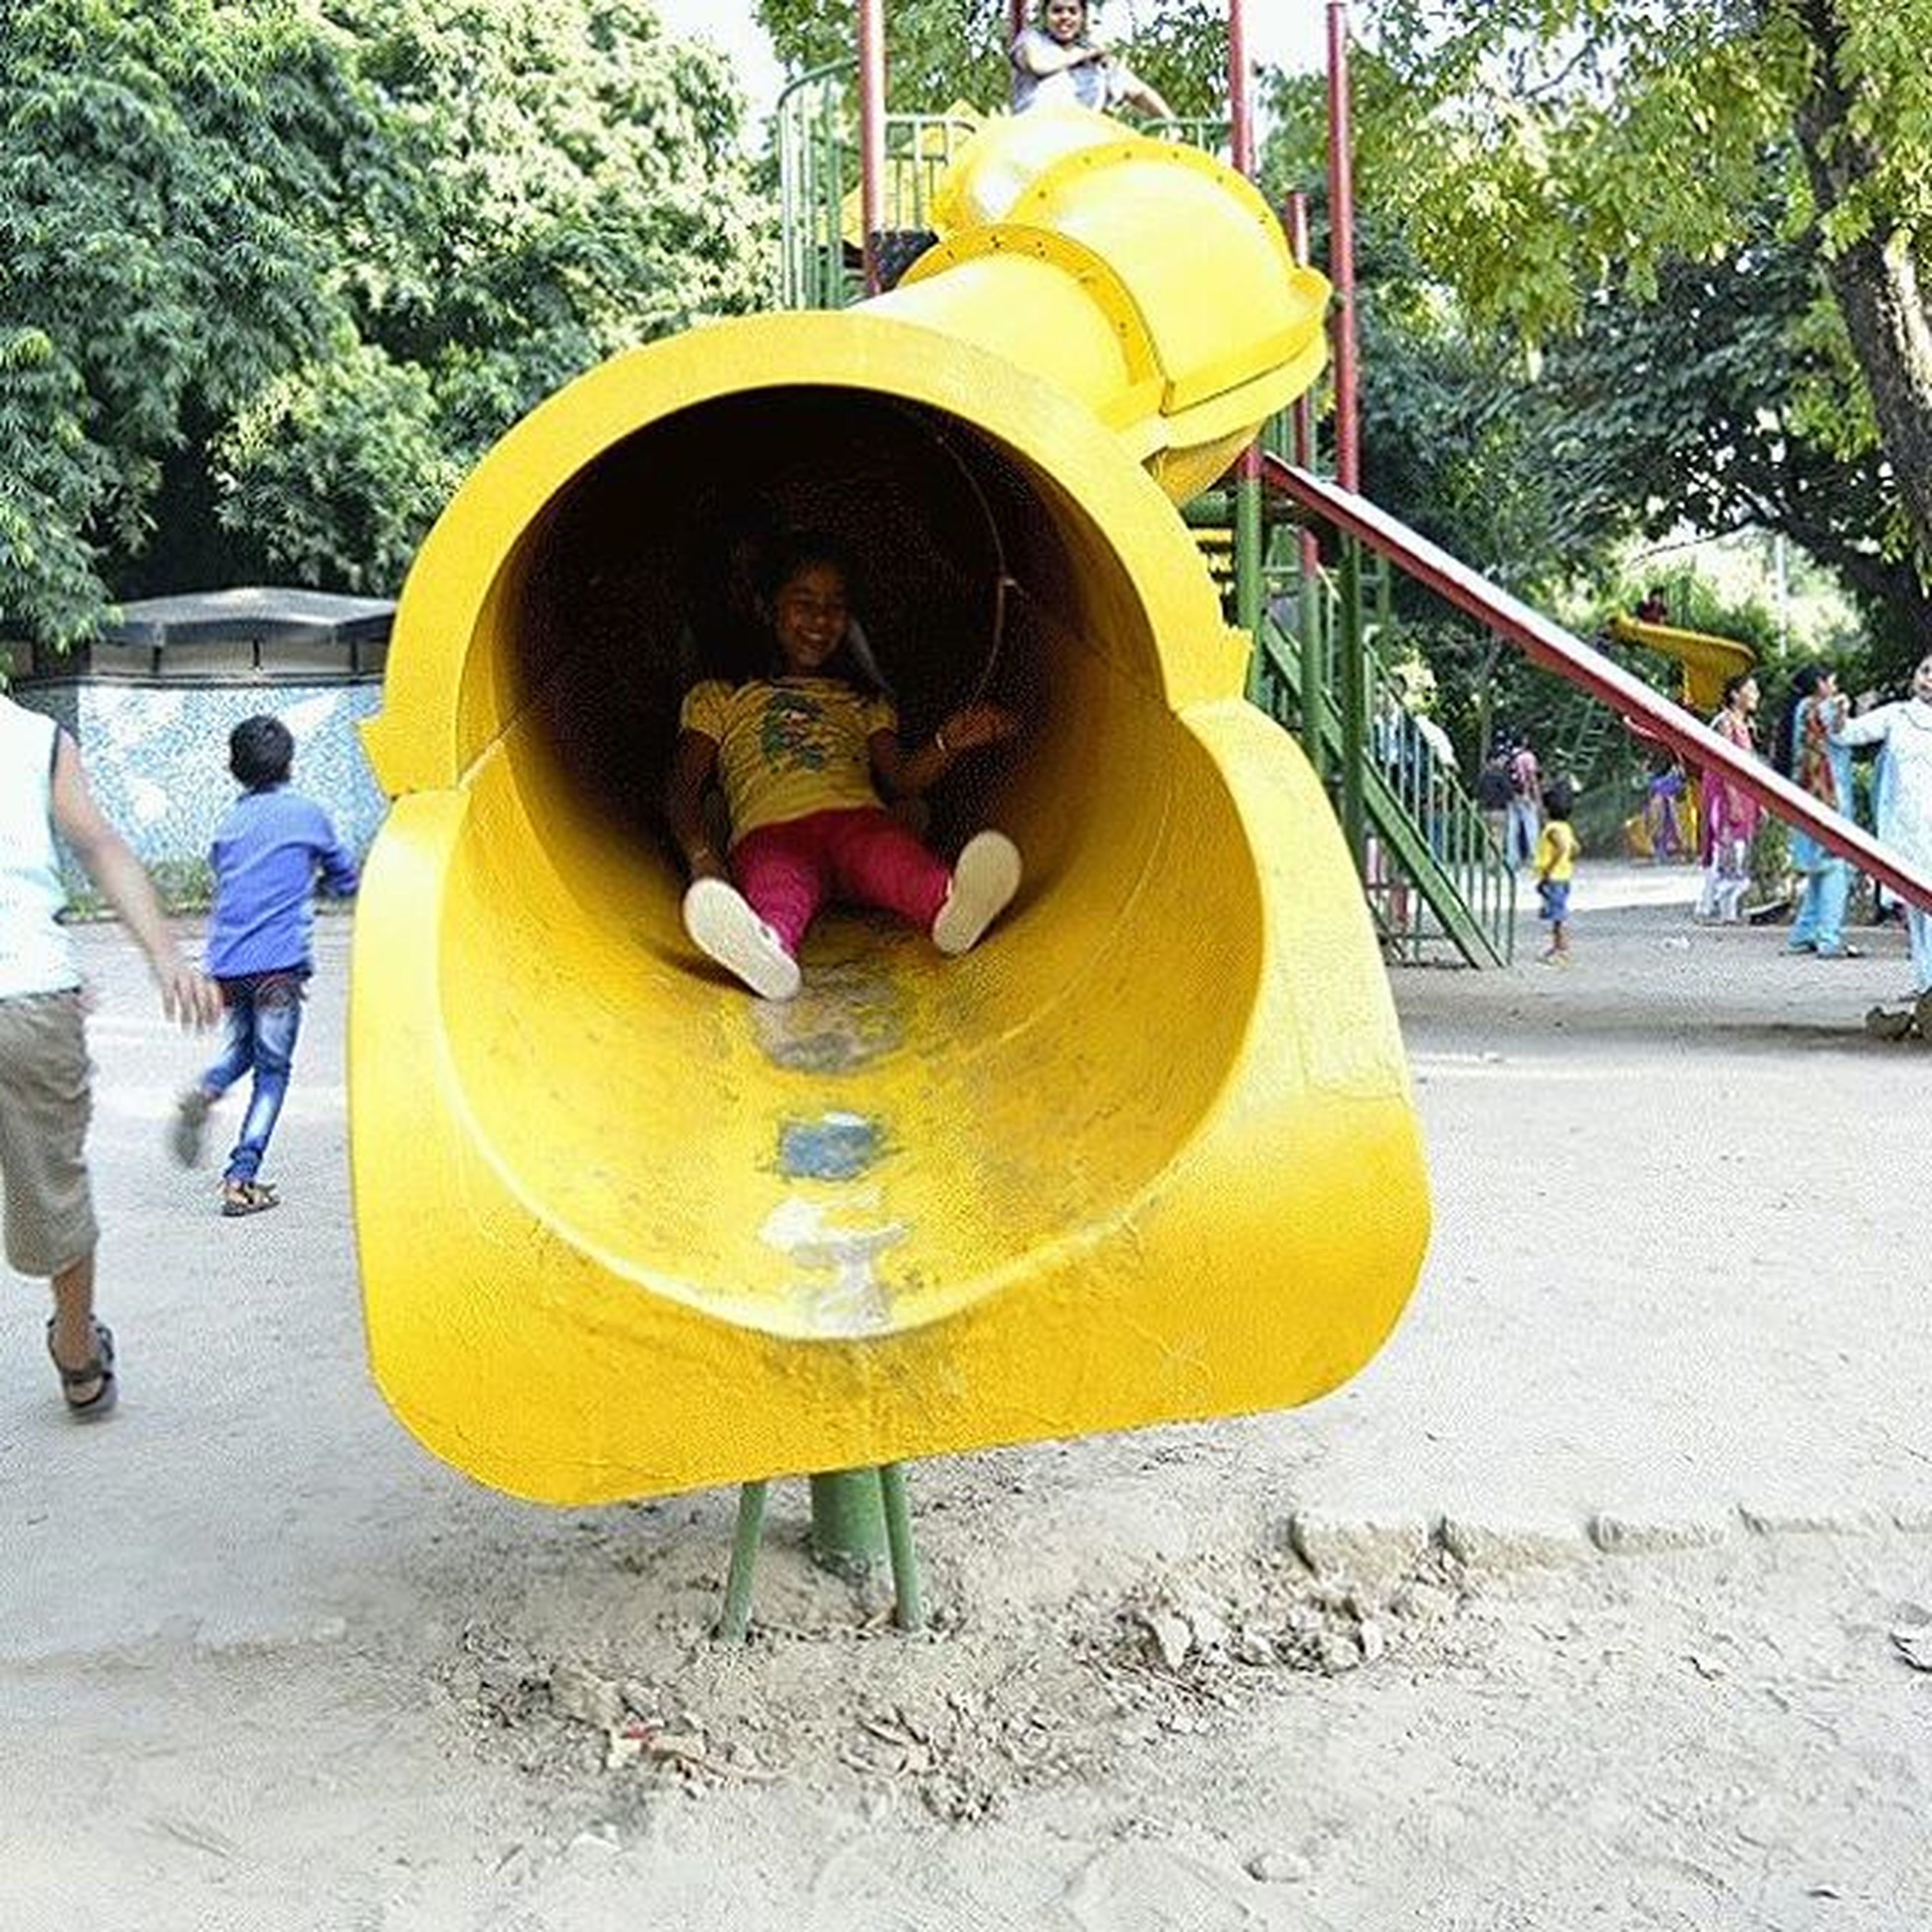 childhood, lifestyles, leisure activity, full length, boys, elementary age, casual clothing, girls, playing, tree, holding, person, playground, innocence, fun, park - man made space, playful, yellow